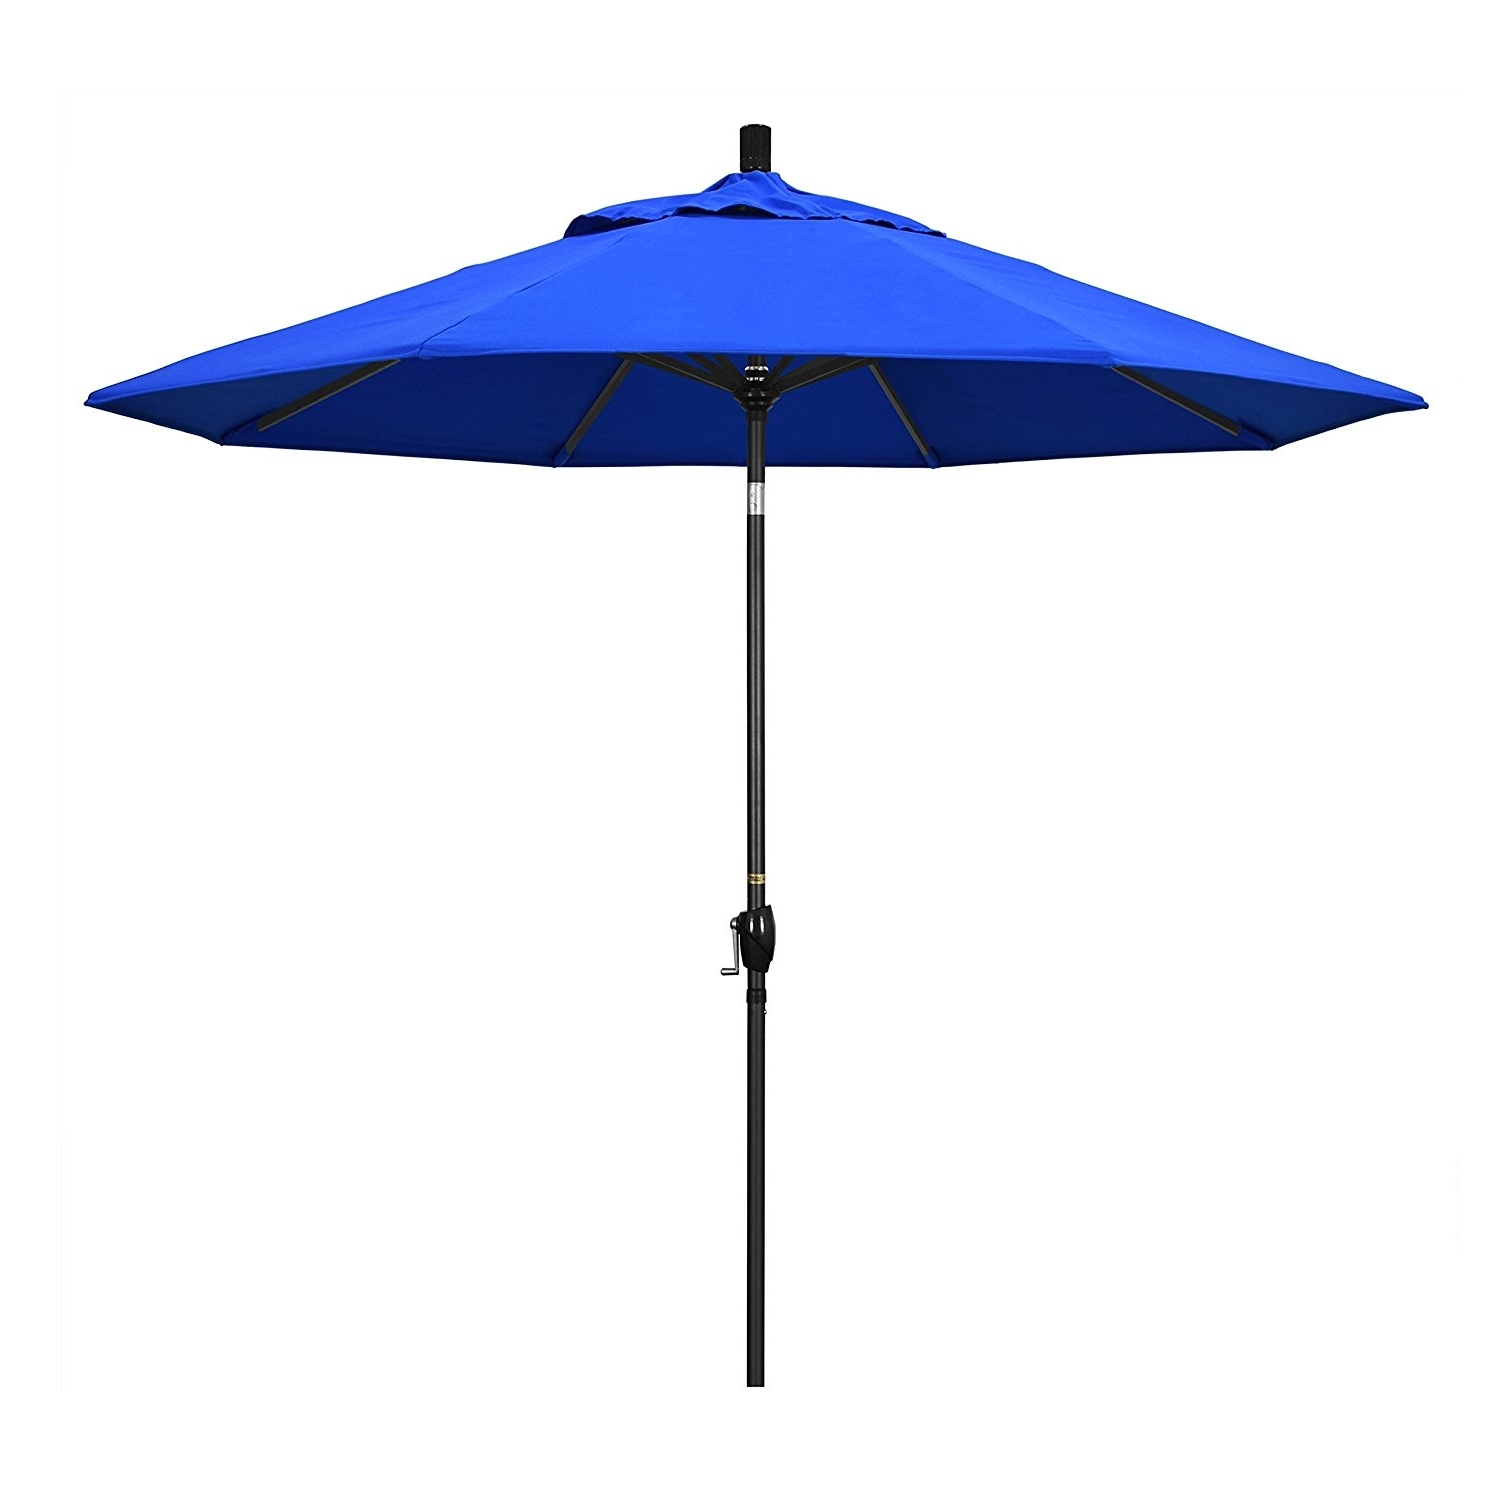 Patio Umbrellas With White Pole With Famous Best Sunbrella Umbrellas. Patio, Market Umbrella Reviews – Outsidemodern (Gallery 15 of 20)